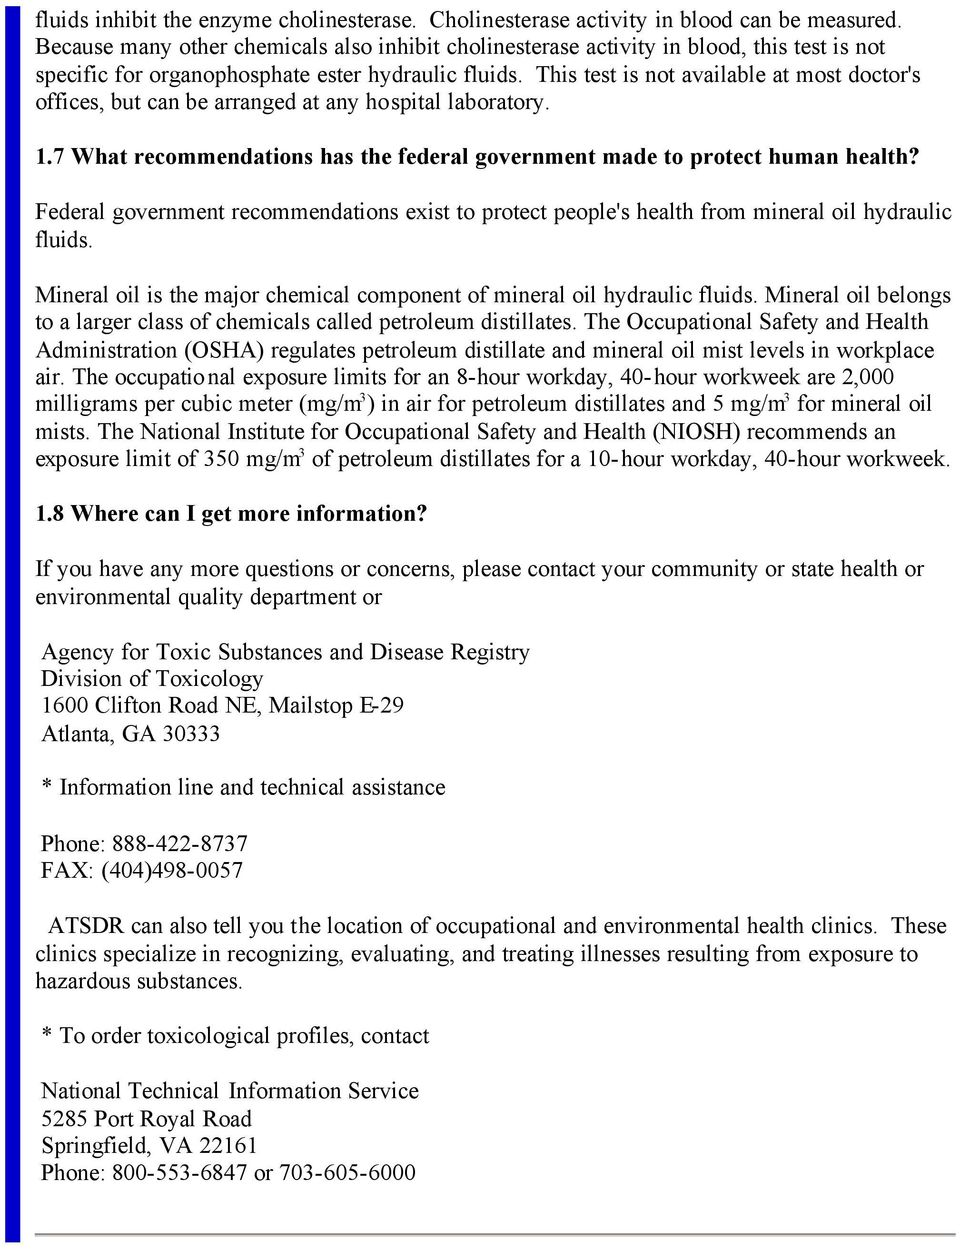 This test is not available at most doctor's offices, but can be arranged at any hospital laboratory. 1.7 What recommendations has the federal government made to protect human health?